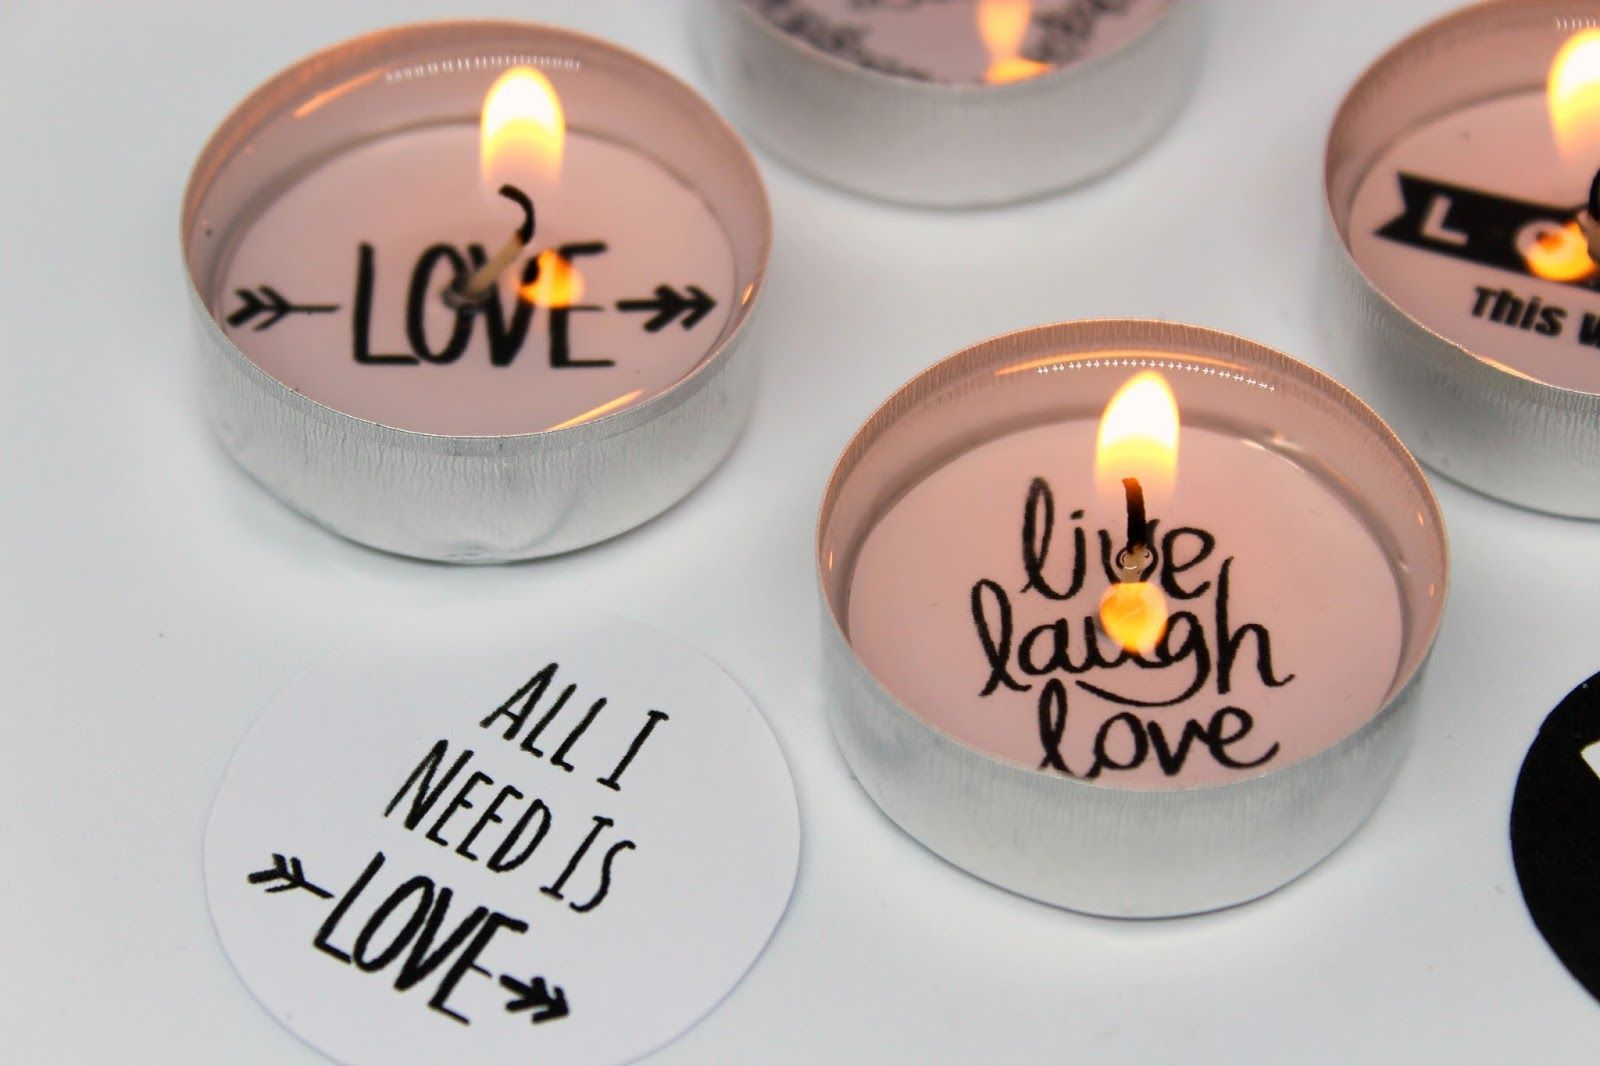 Make DIY cute tealights with love message  video tutorial  Make DIY cute tealights with love message  video tutorial